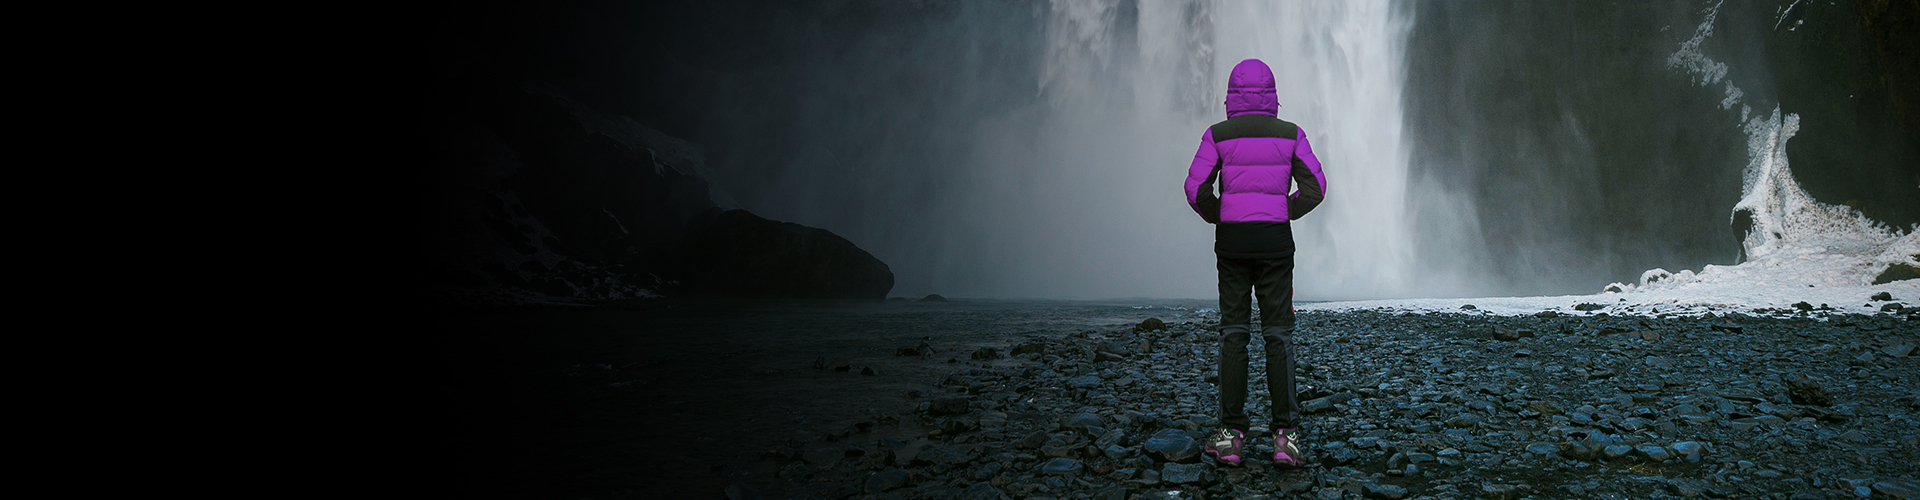 A young person in a padded jacket looking at a phenomenal waterfall